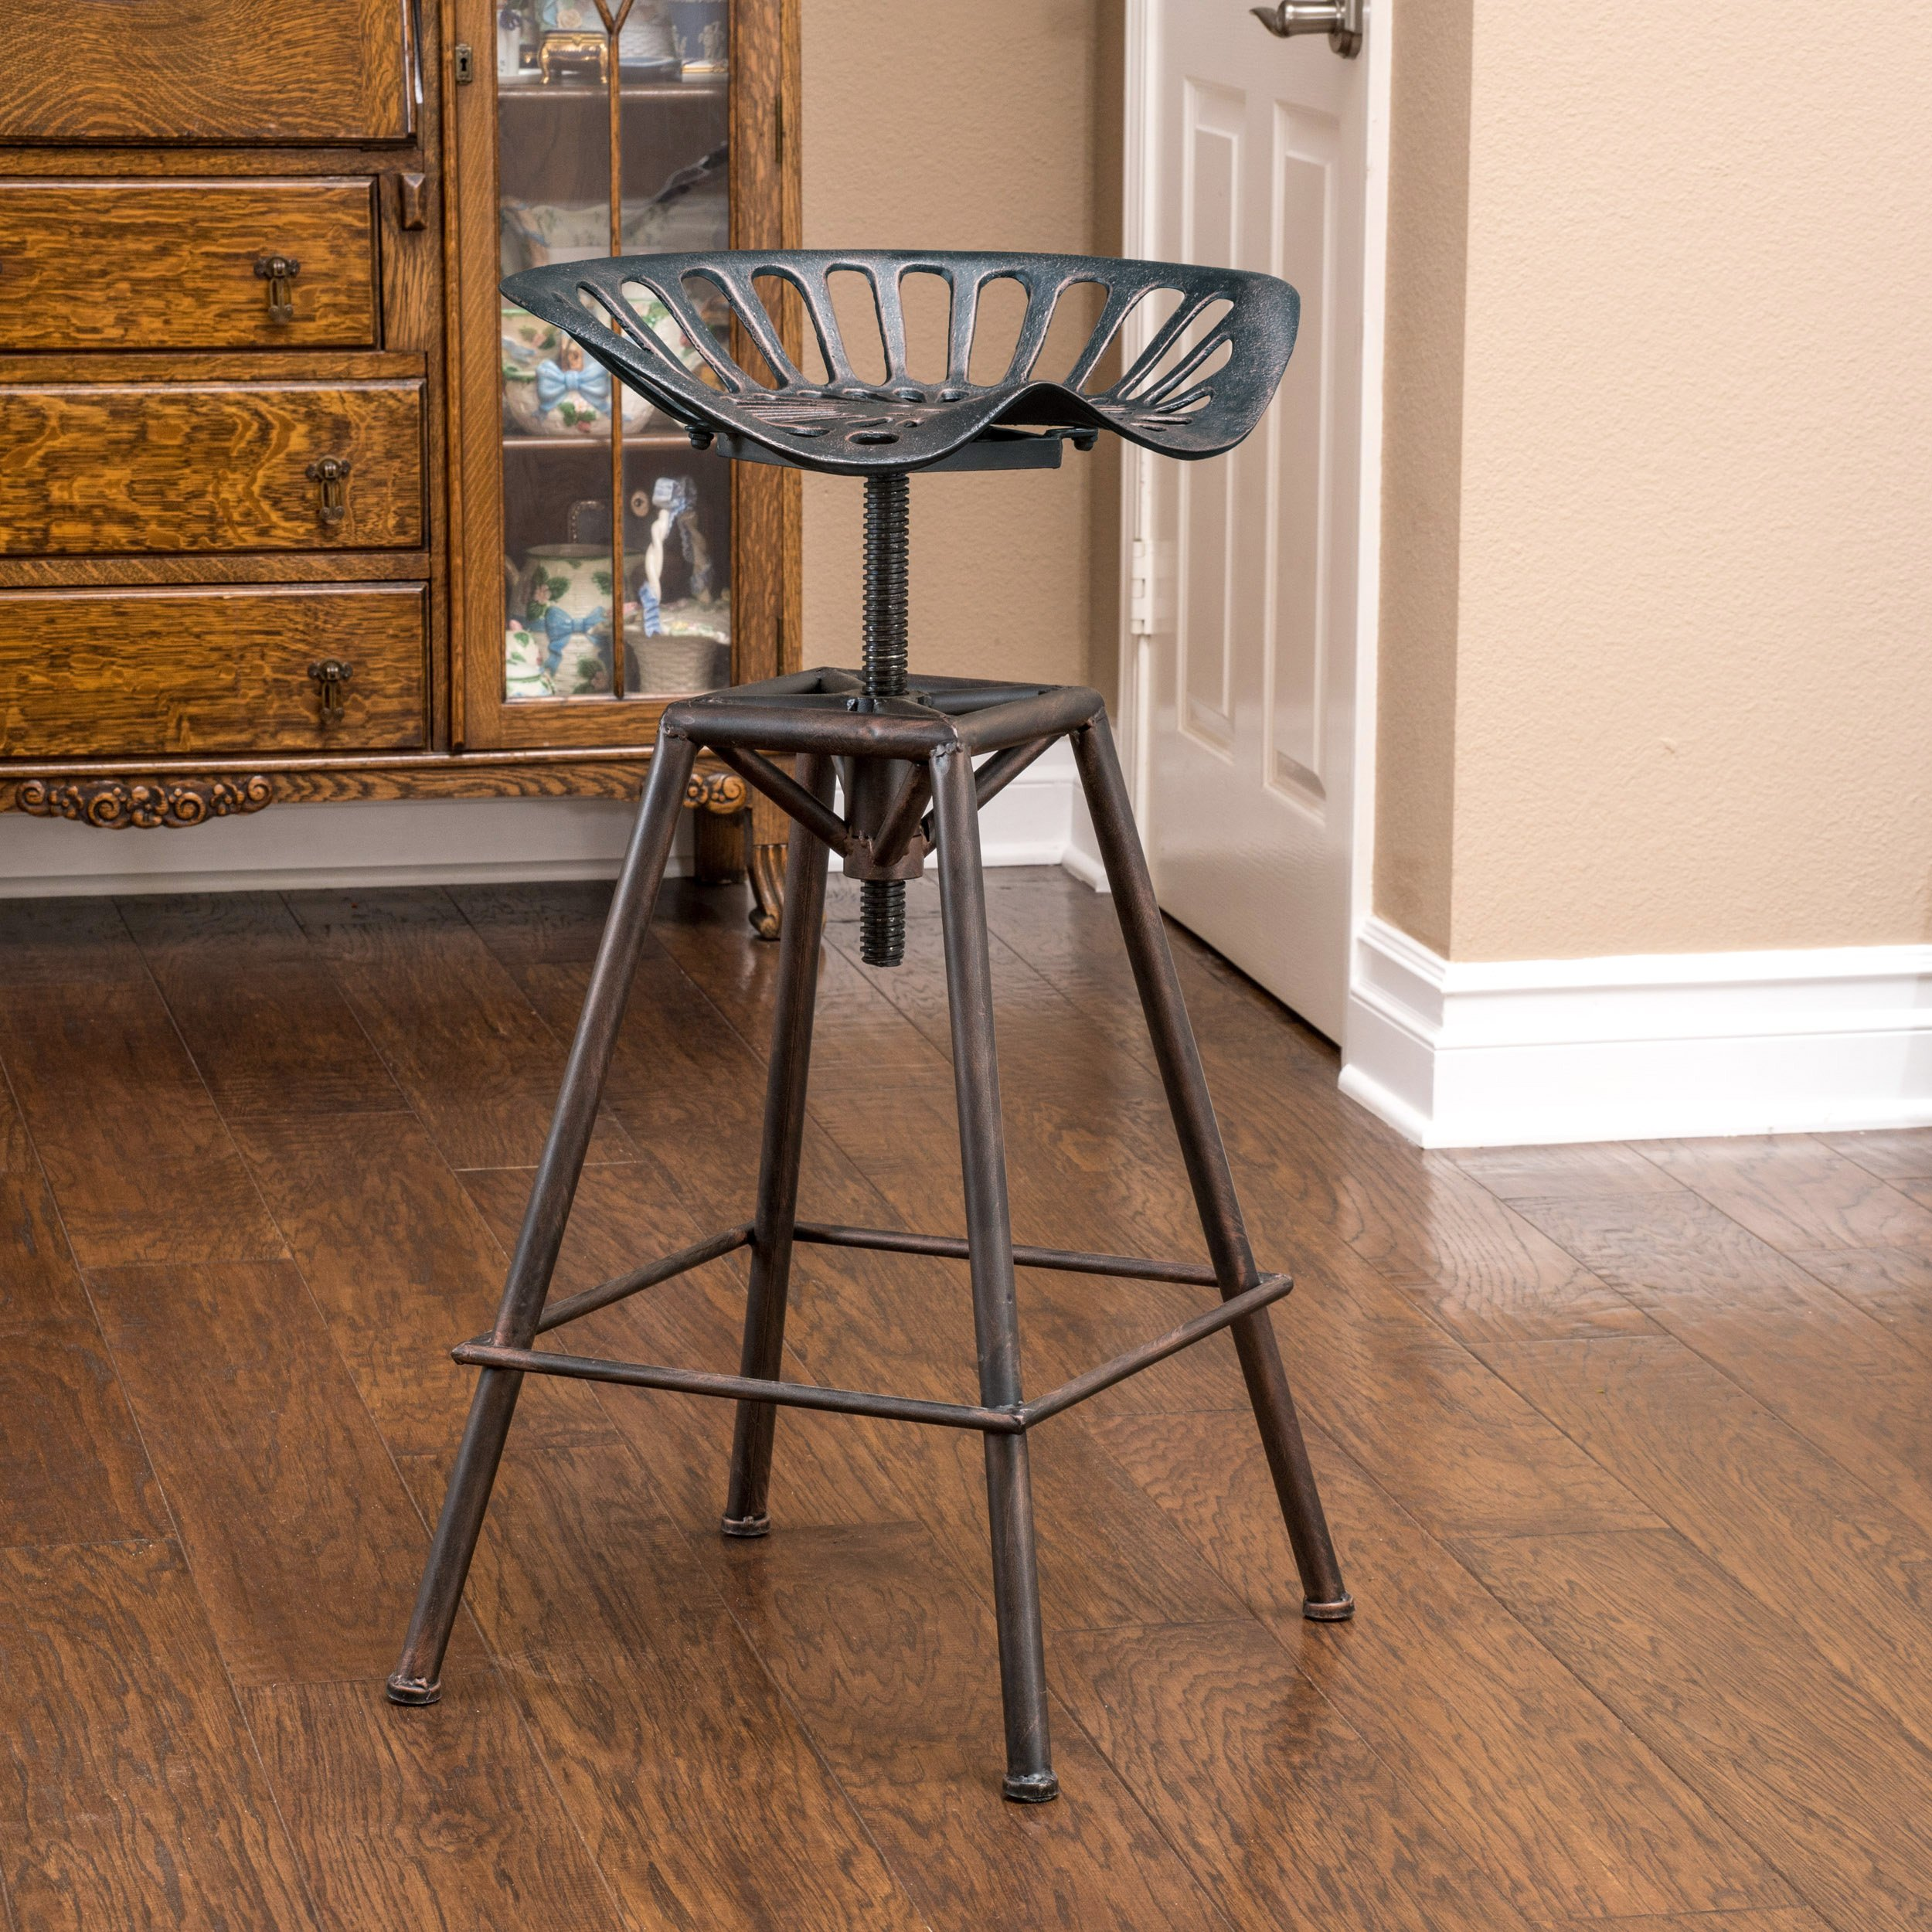 Christopher Knight Home 235249 Great Deal Furniture Charlie Industrial Metal Design Tractor Seat Bar Stool, Brown